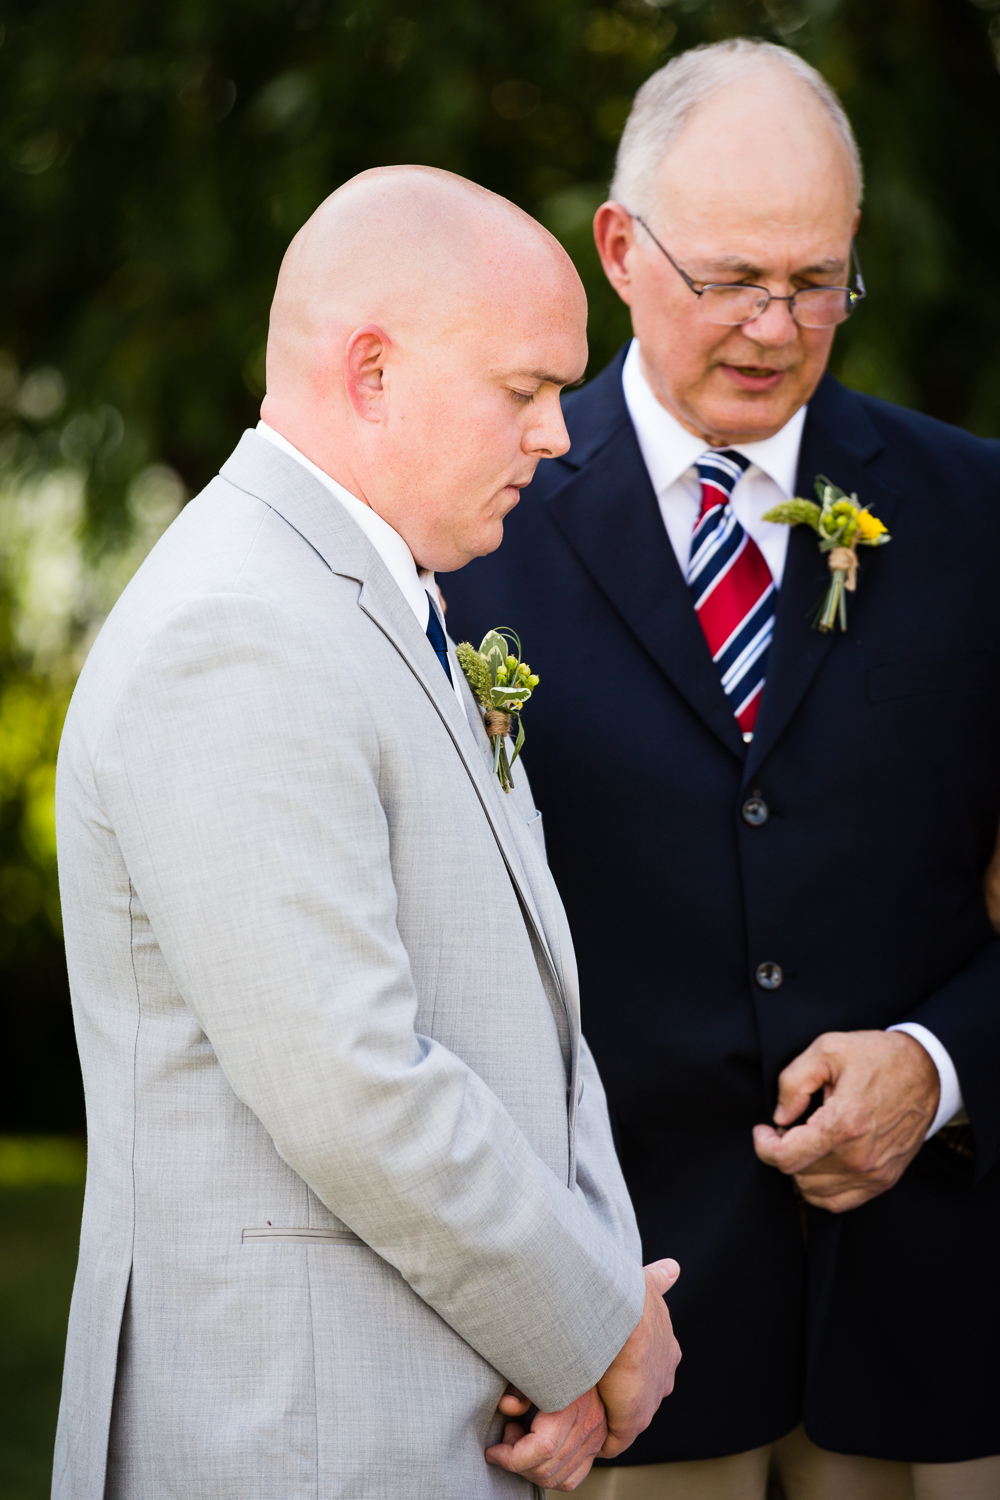 bozeman-montana-wedding-roys-barn-groom-prays-during-ceremony.jpg